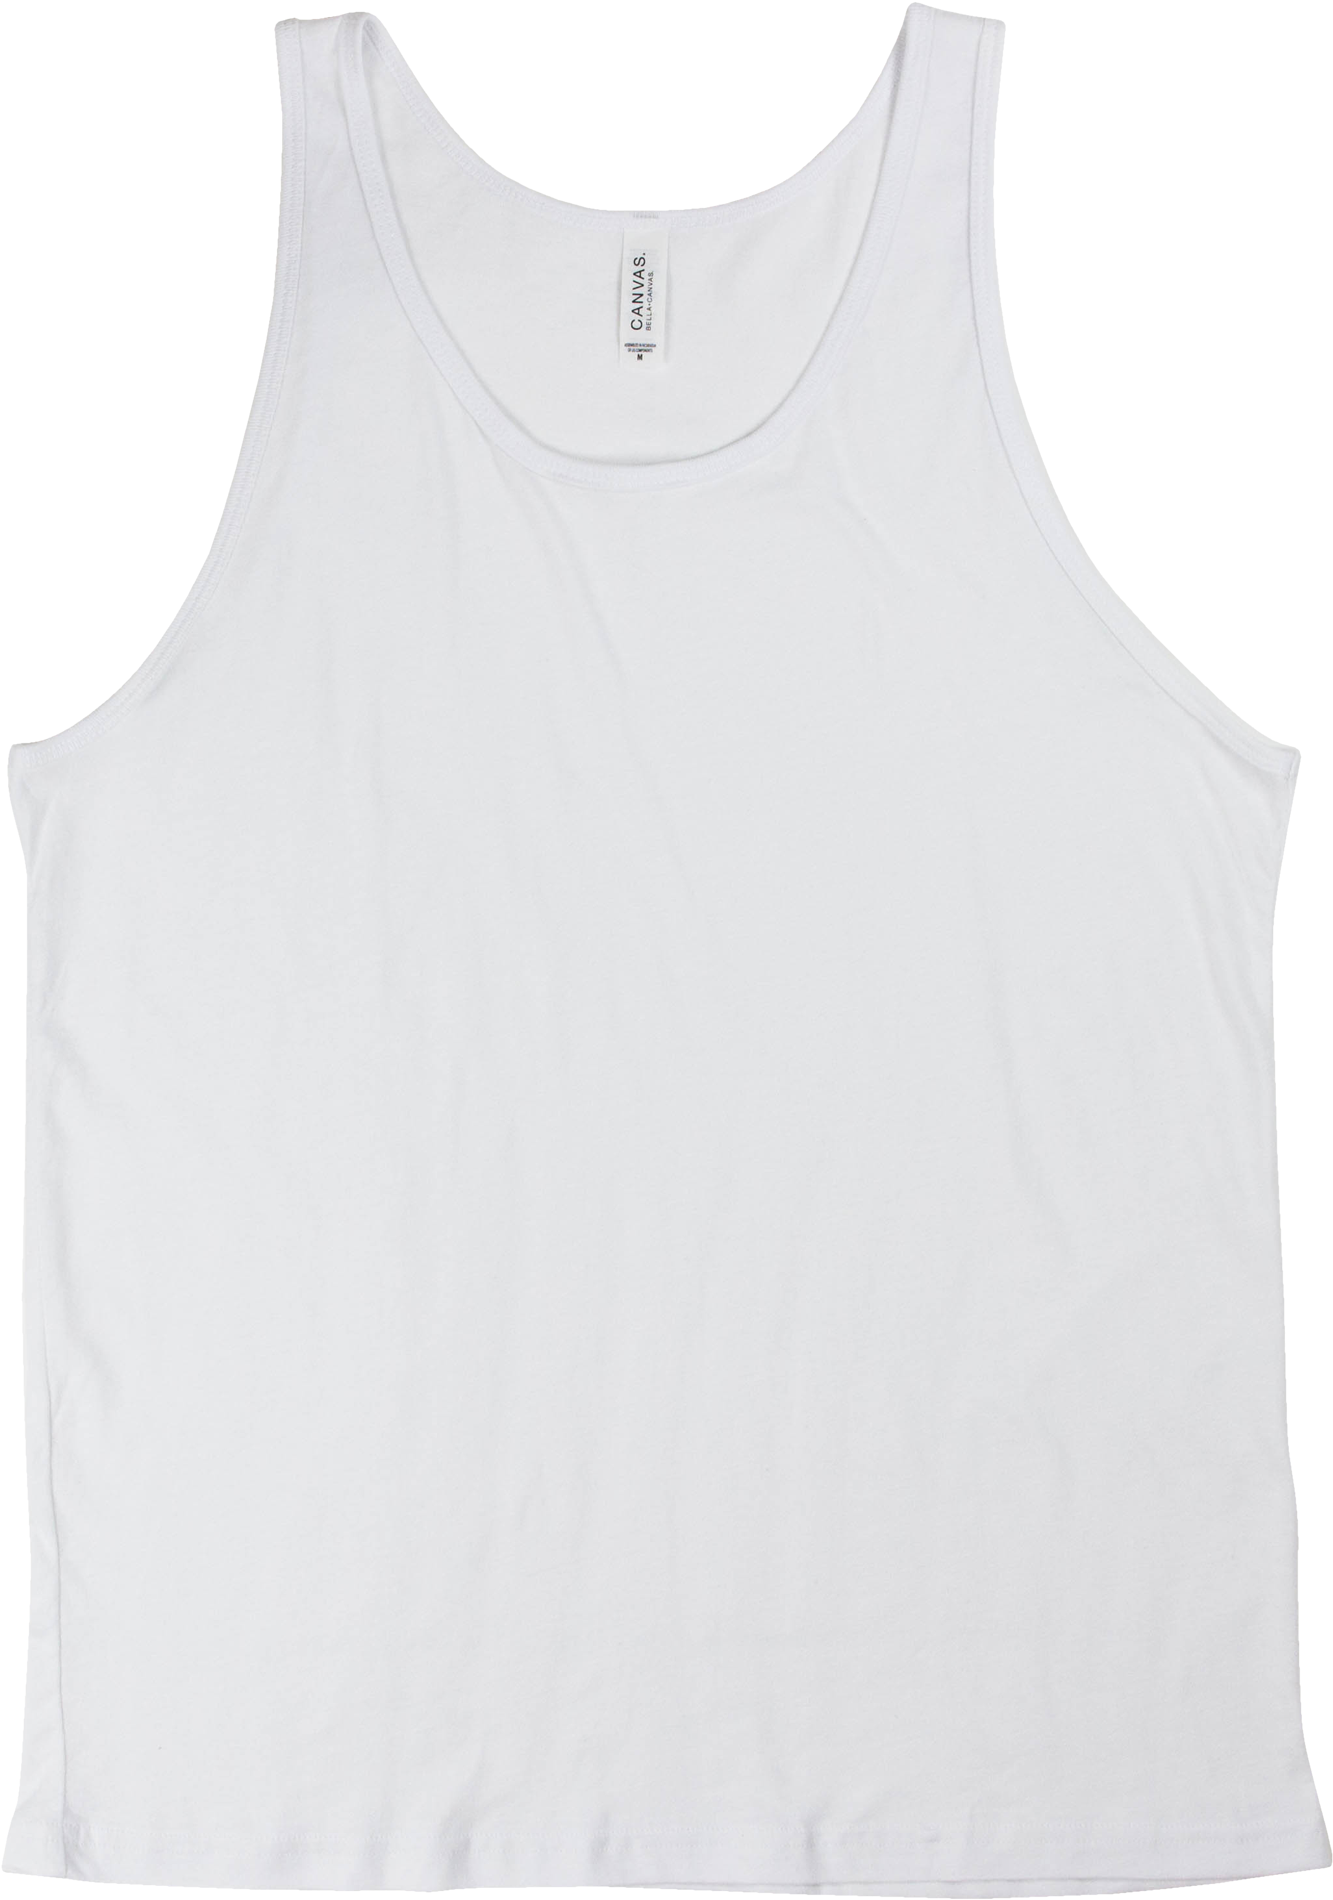 White Tank Top Png.